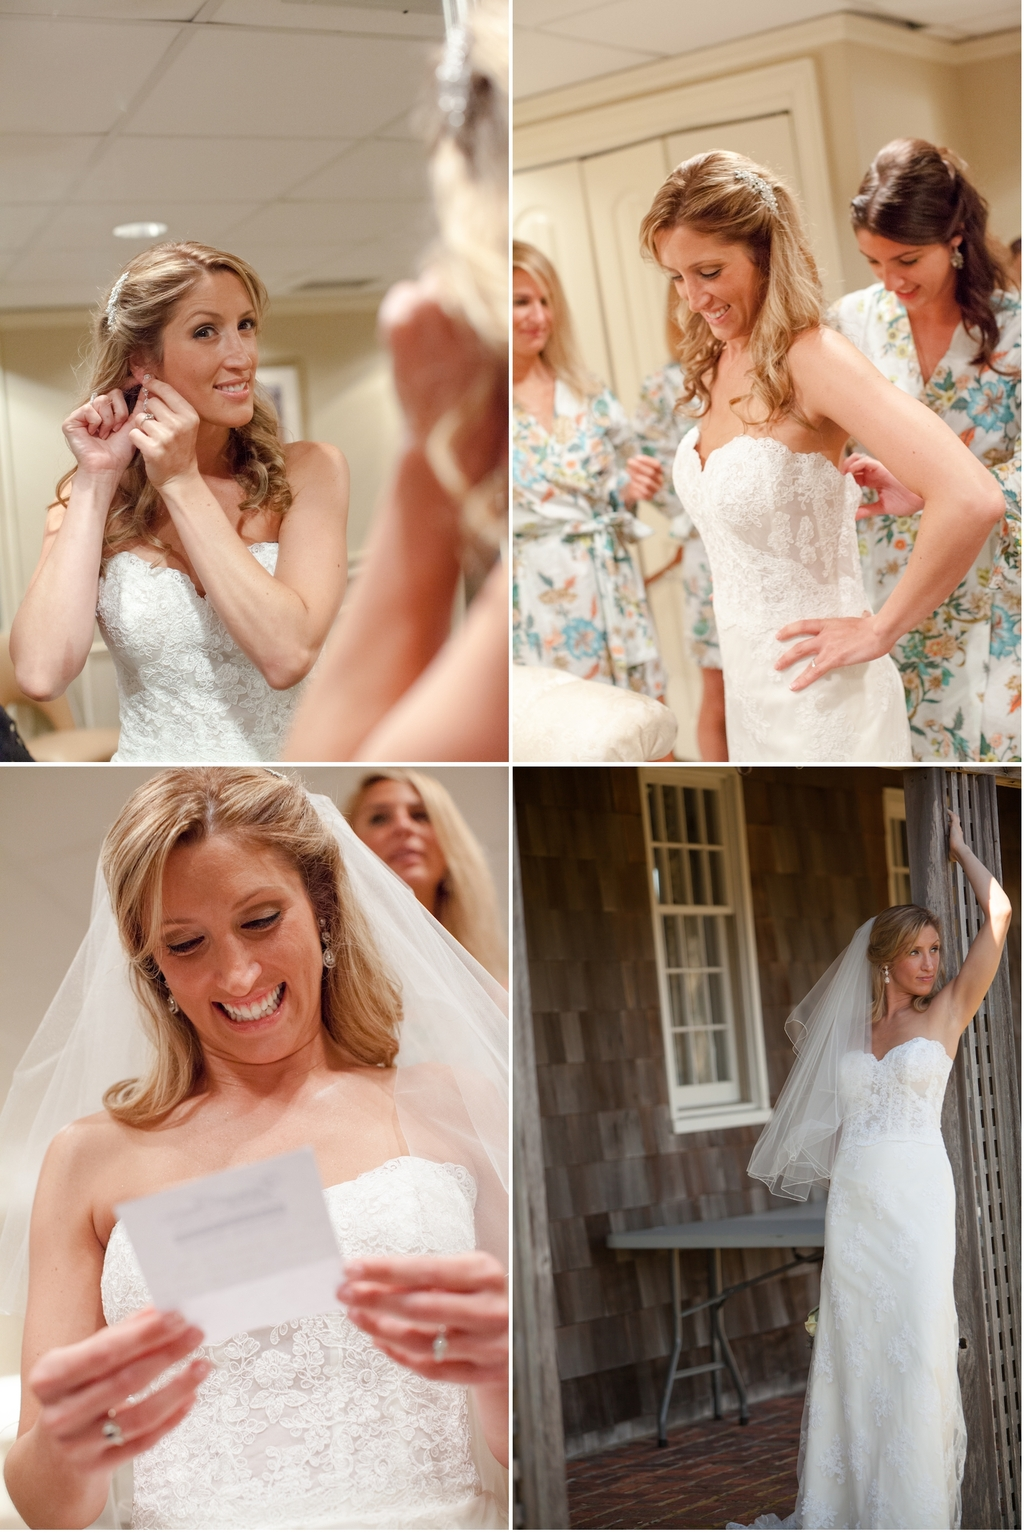 Real-wedding-long-island-throo-williams-photography-by-verdi-bride-getting-ready.full